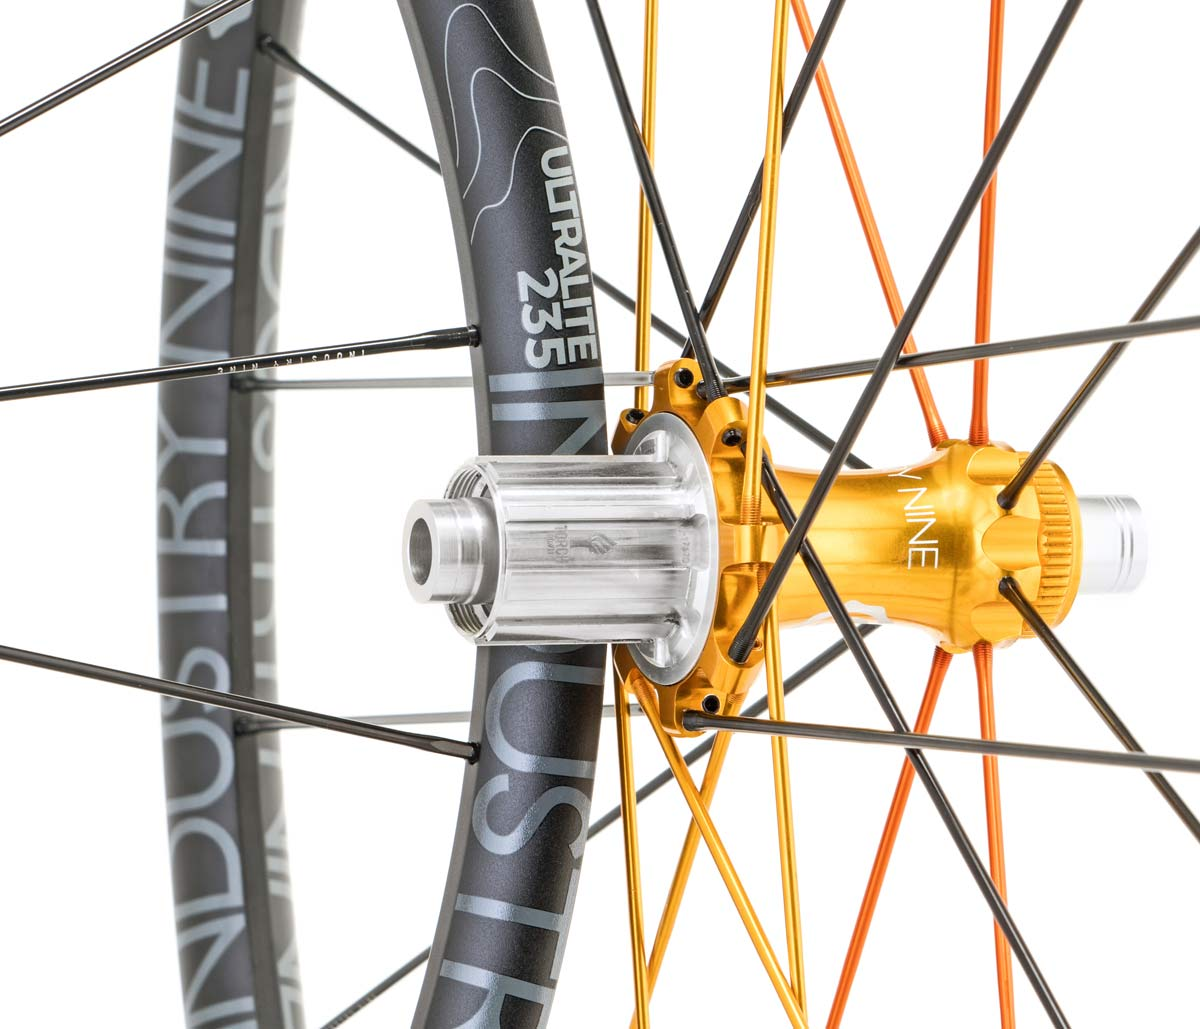 Industry Nine UL235 Torch Road Alloy cyclocross and gravel race bike wheels